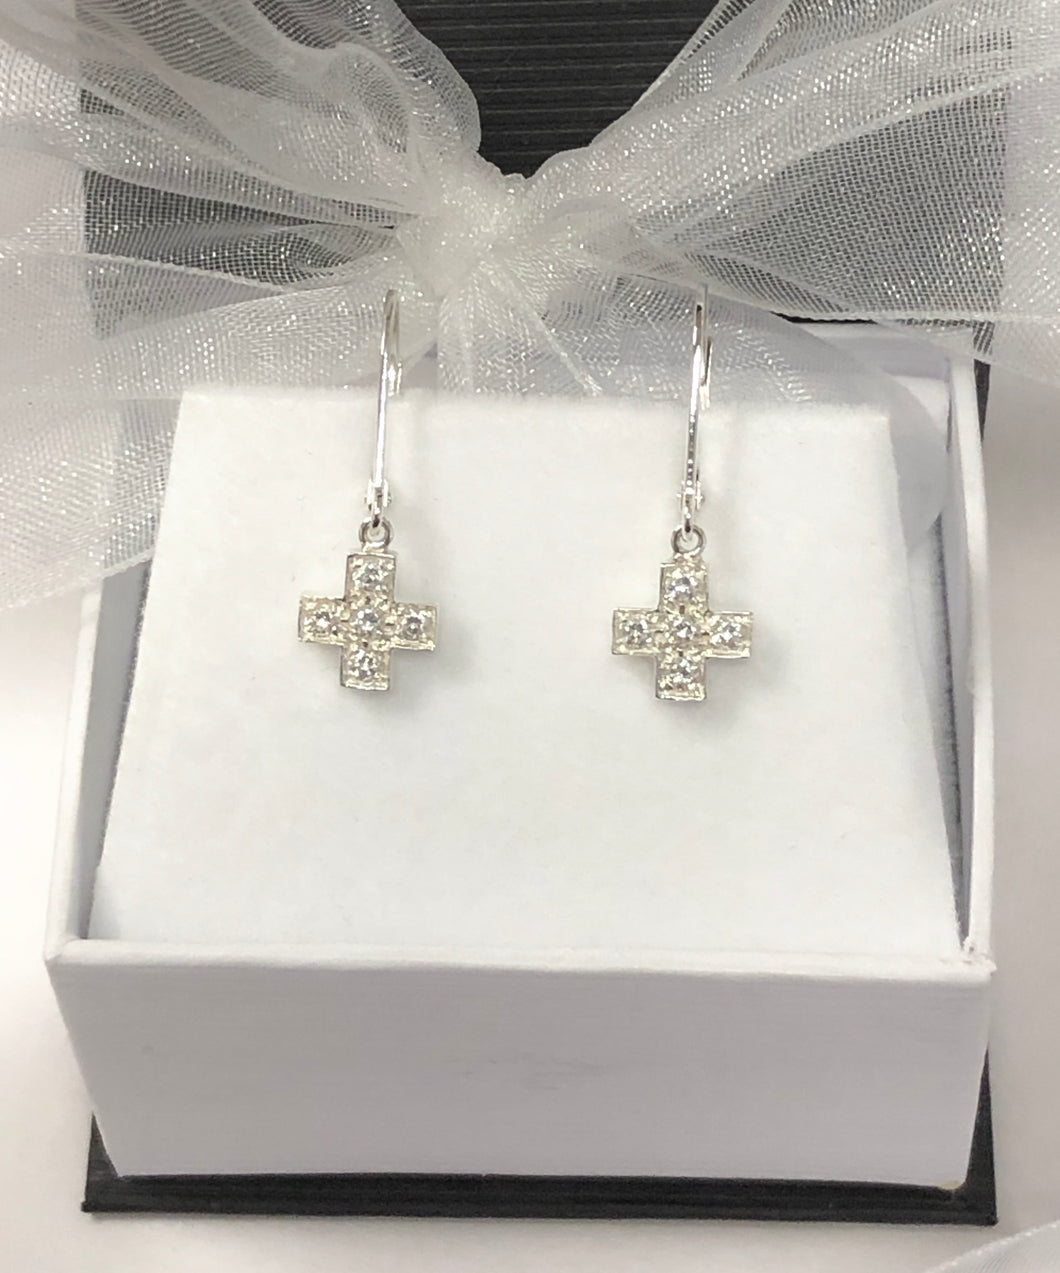 Cross Set with Crystals in Sterling Silver Earrings